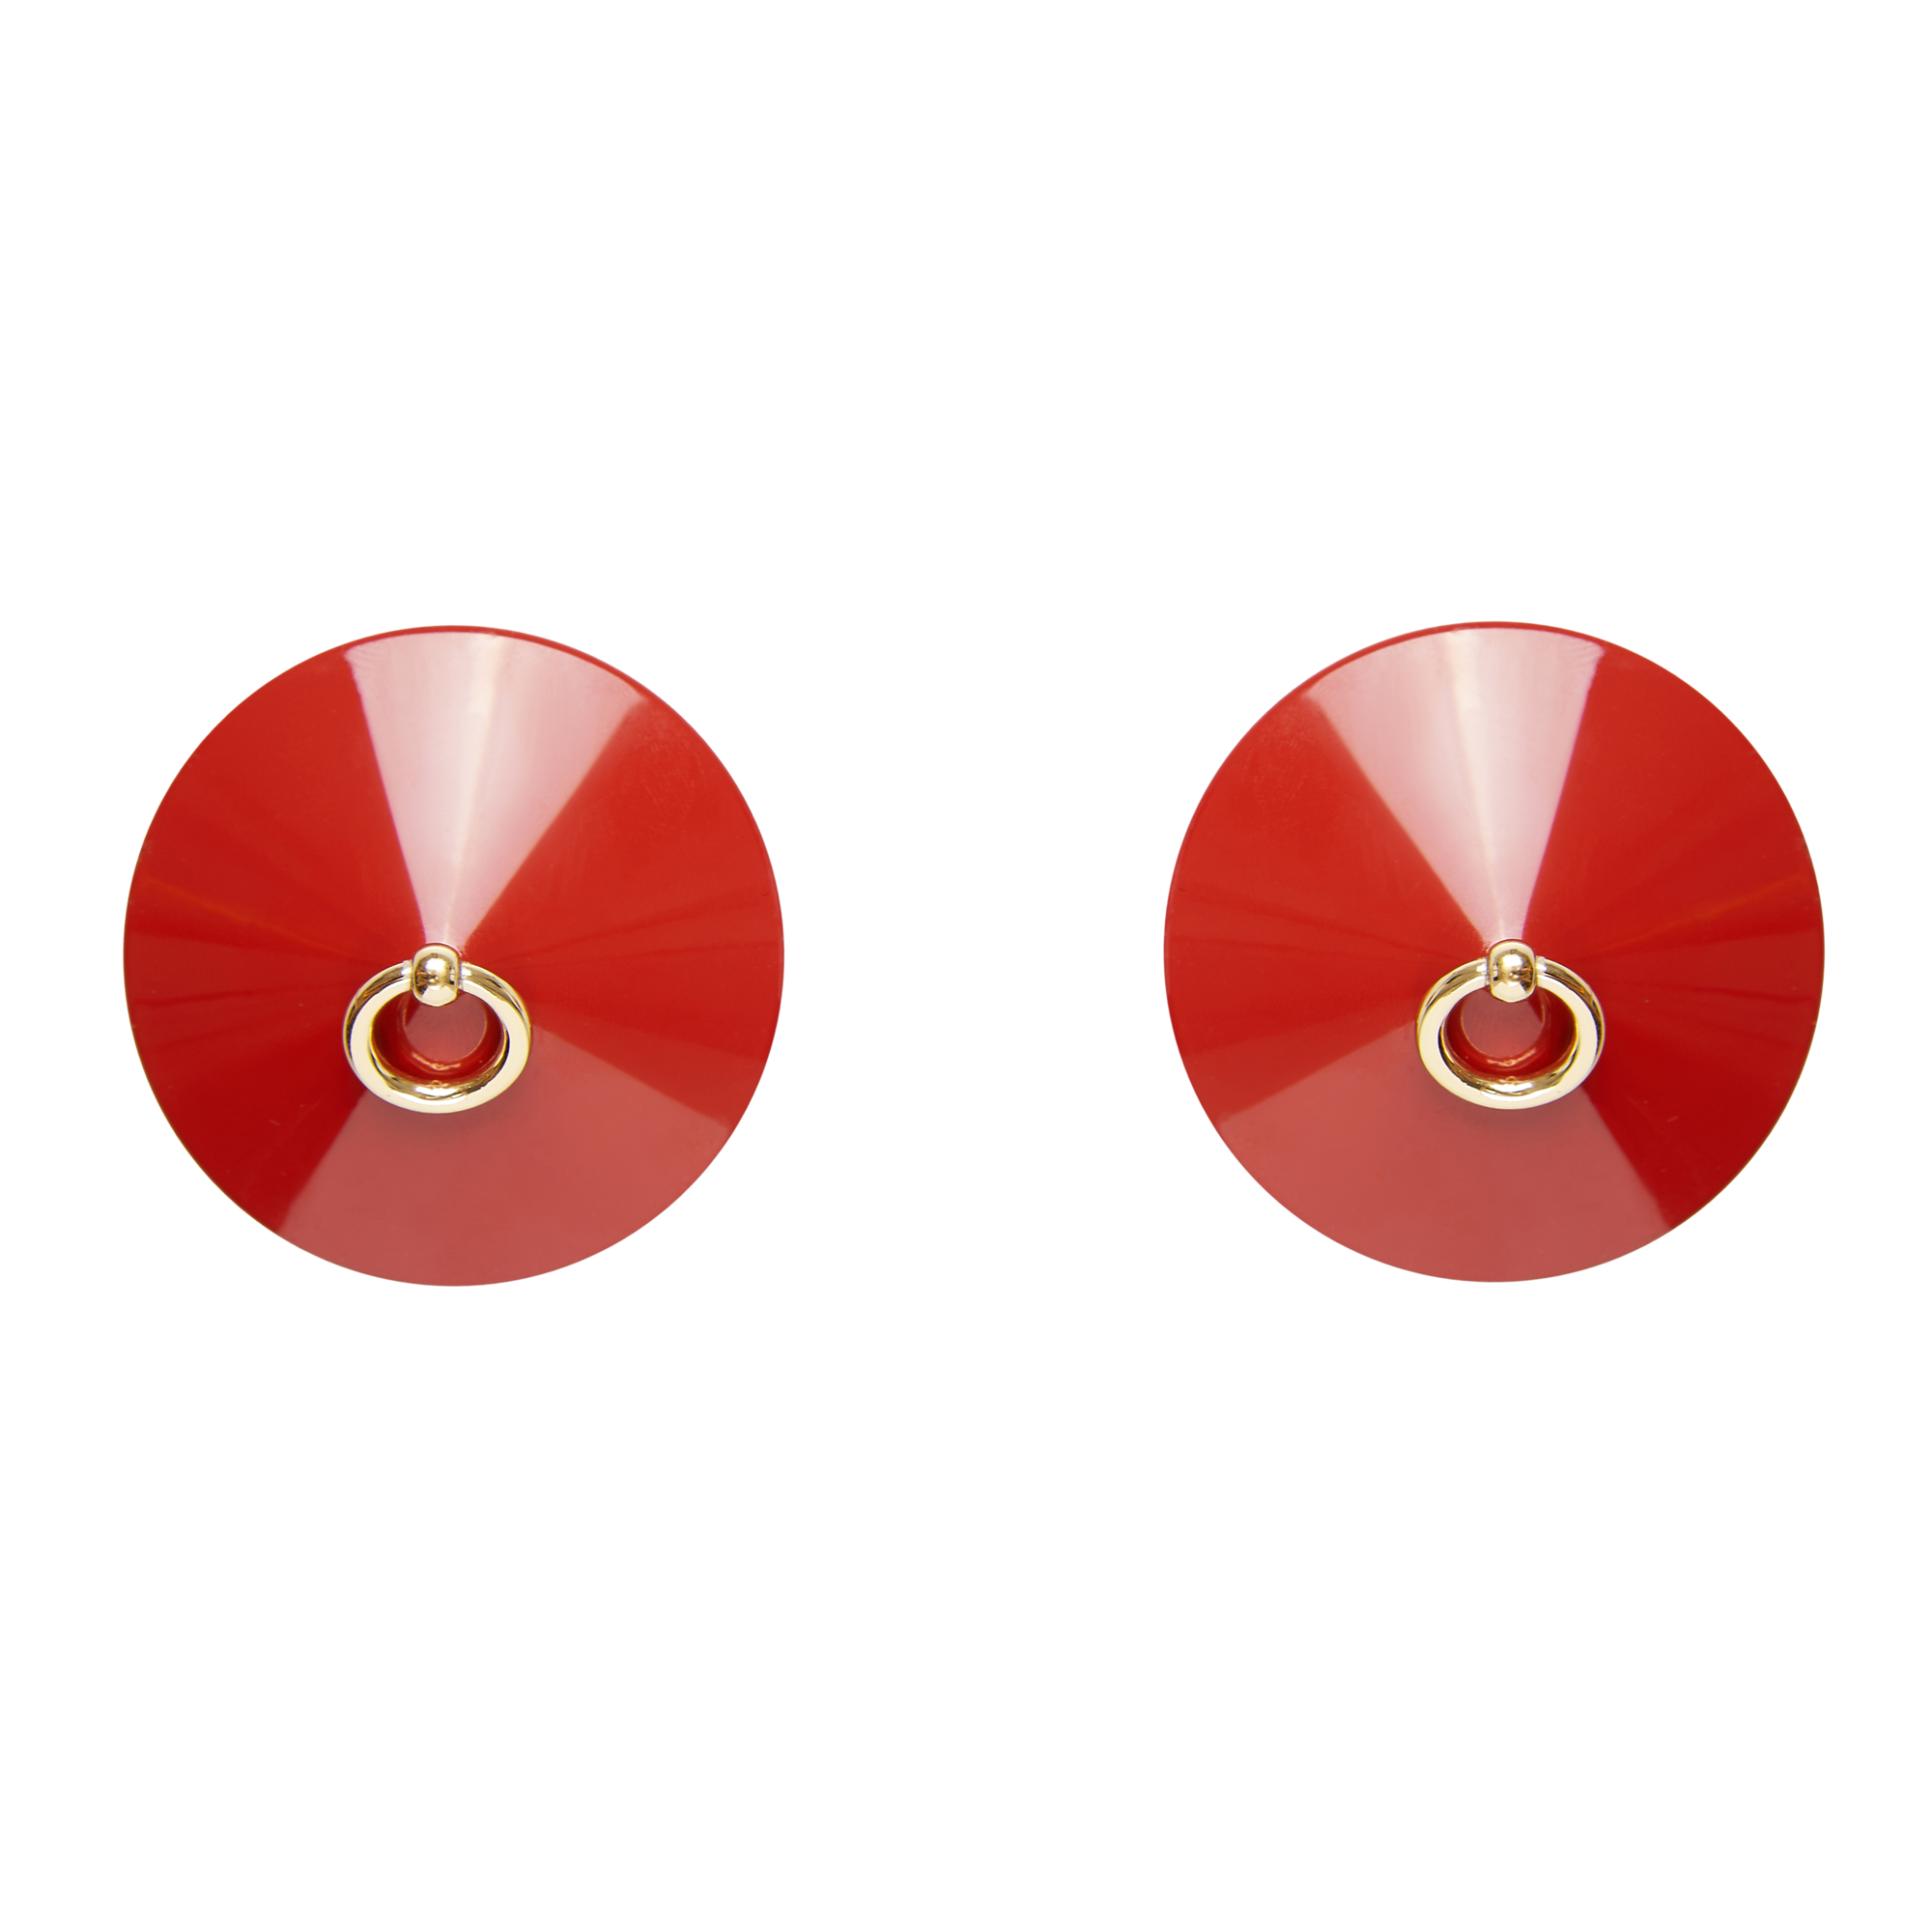 Bordelle O enamel nipplet red